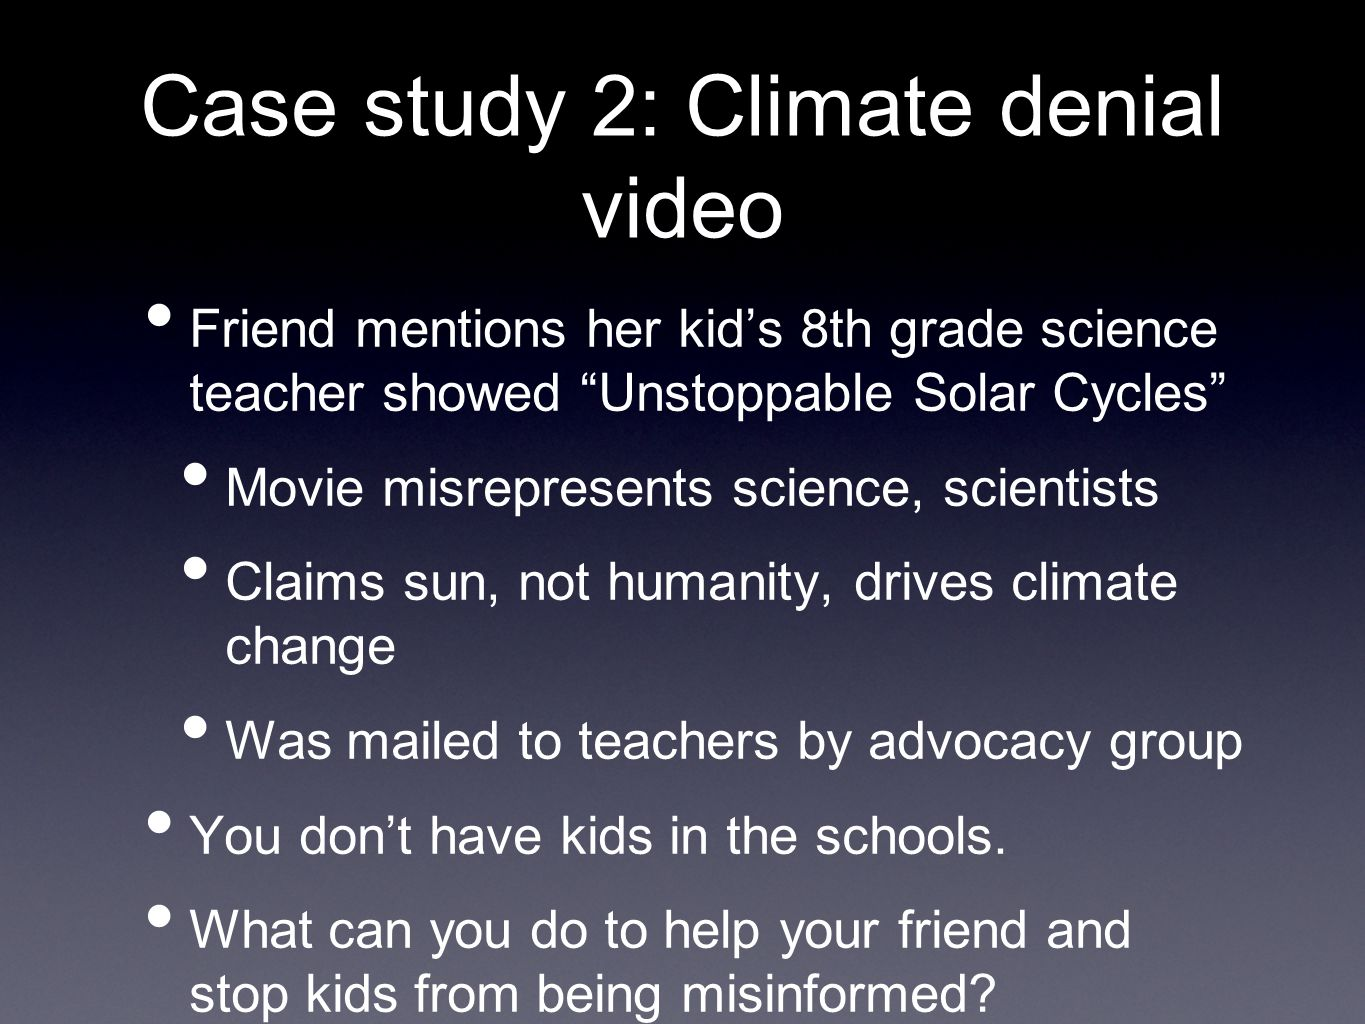 Case study 2: Climate denial video Friend mentions her kid's 8th grade science teacher showed Unstoppable Solar Cycles Movie misrepresents science, scientists Claims sun, not humanity, drives climate change Was mailed to teachers by advocacy group You don't have kids in the schools.